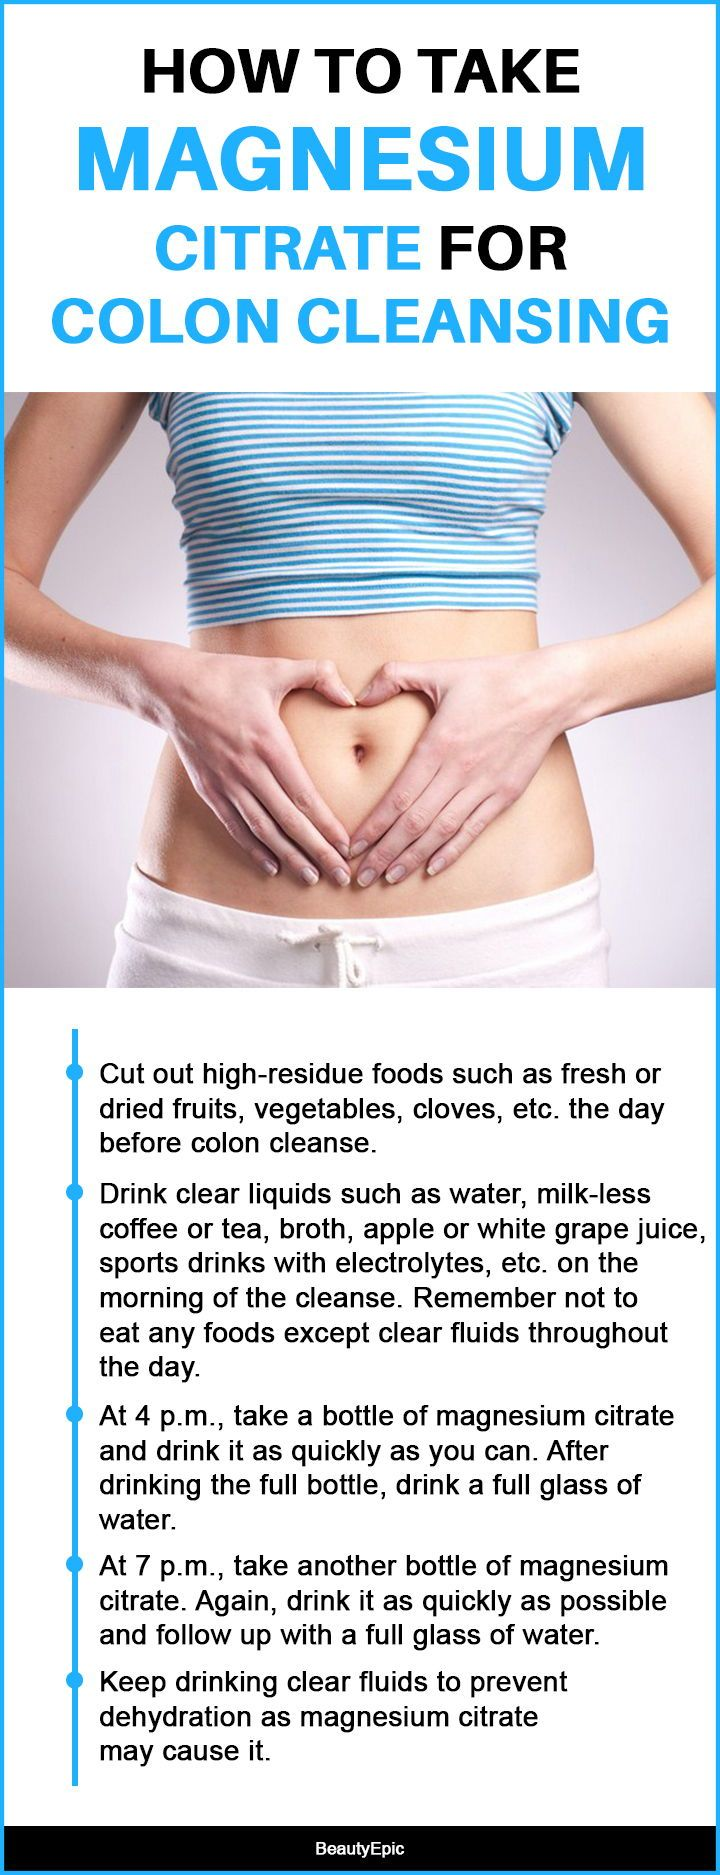 How to take magnesium citrate for colon cleansing